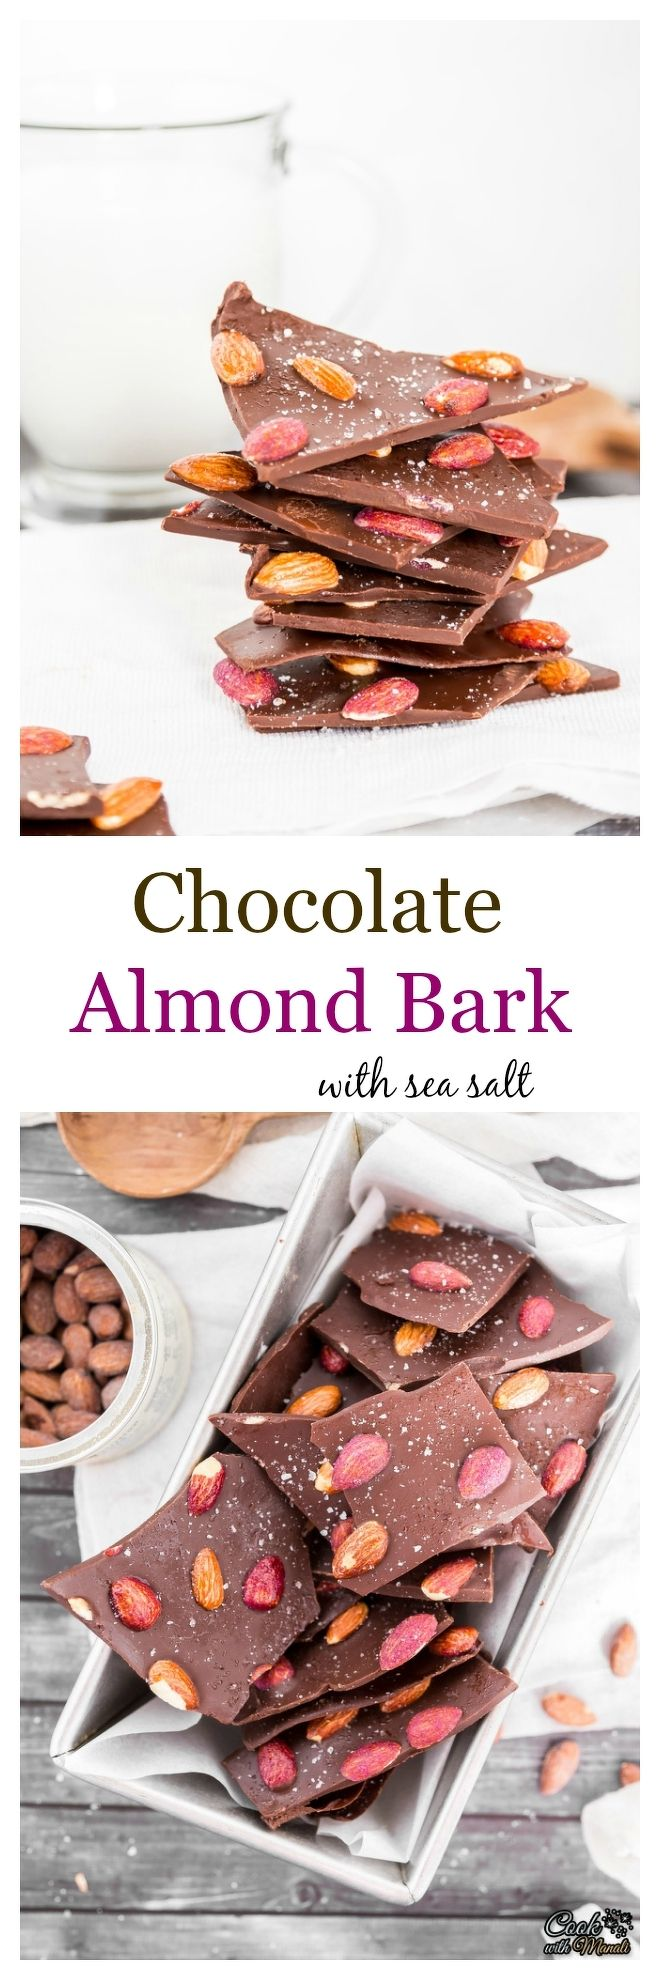 Chocolate Almond Bark with Salted Caramel & Blueberry Almonds and a hint of sea salt! Perfect for snacking or gifting! #chocolate #ad